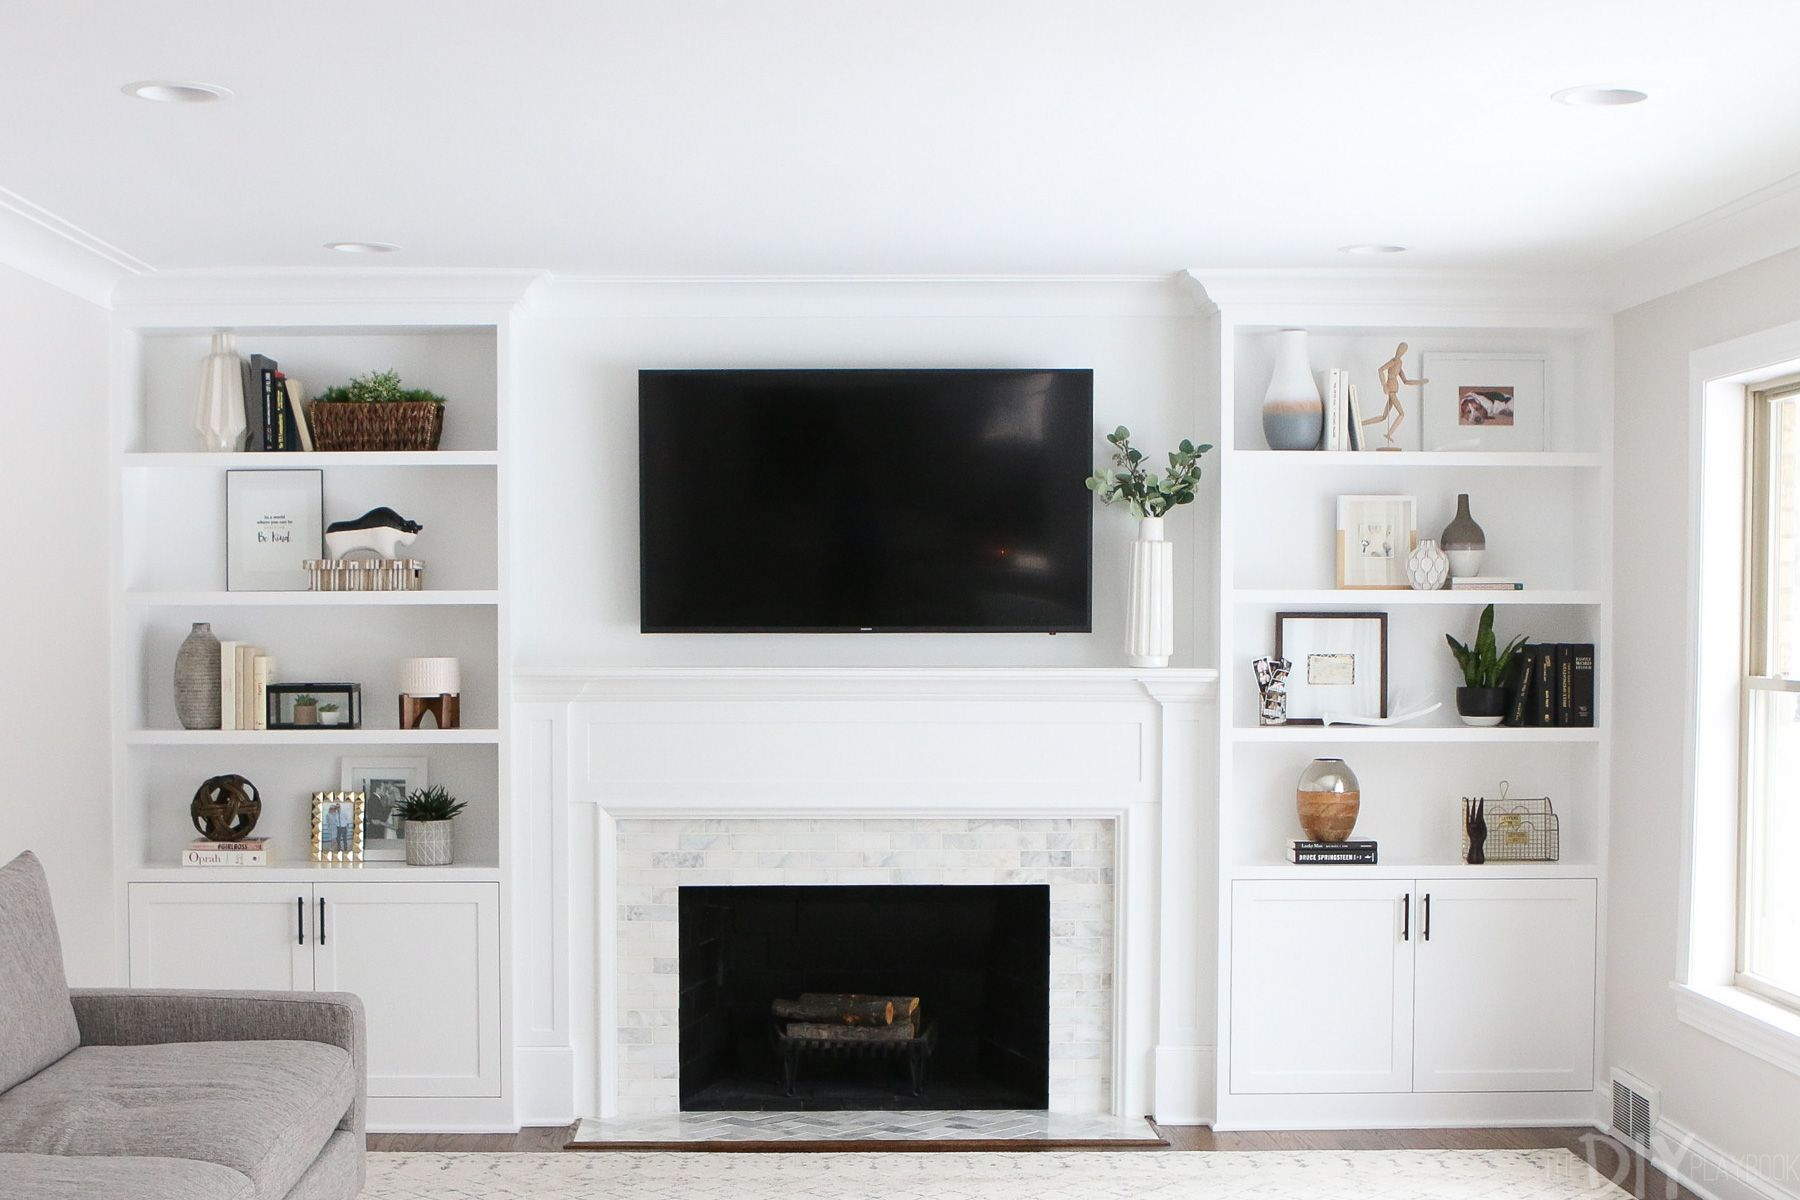 The Dos and Don'ts of Decorating Built-In Shelves | Built ...